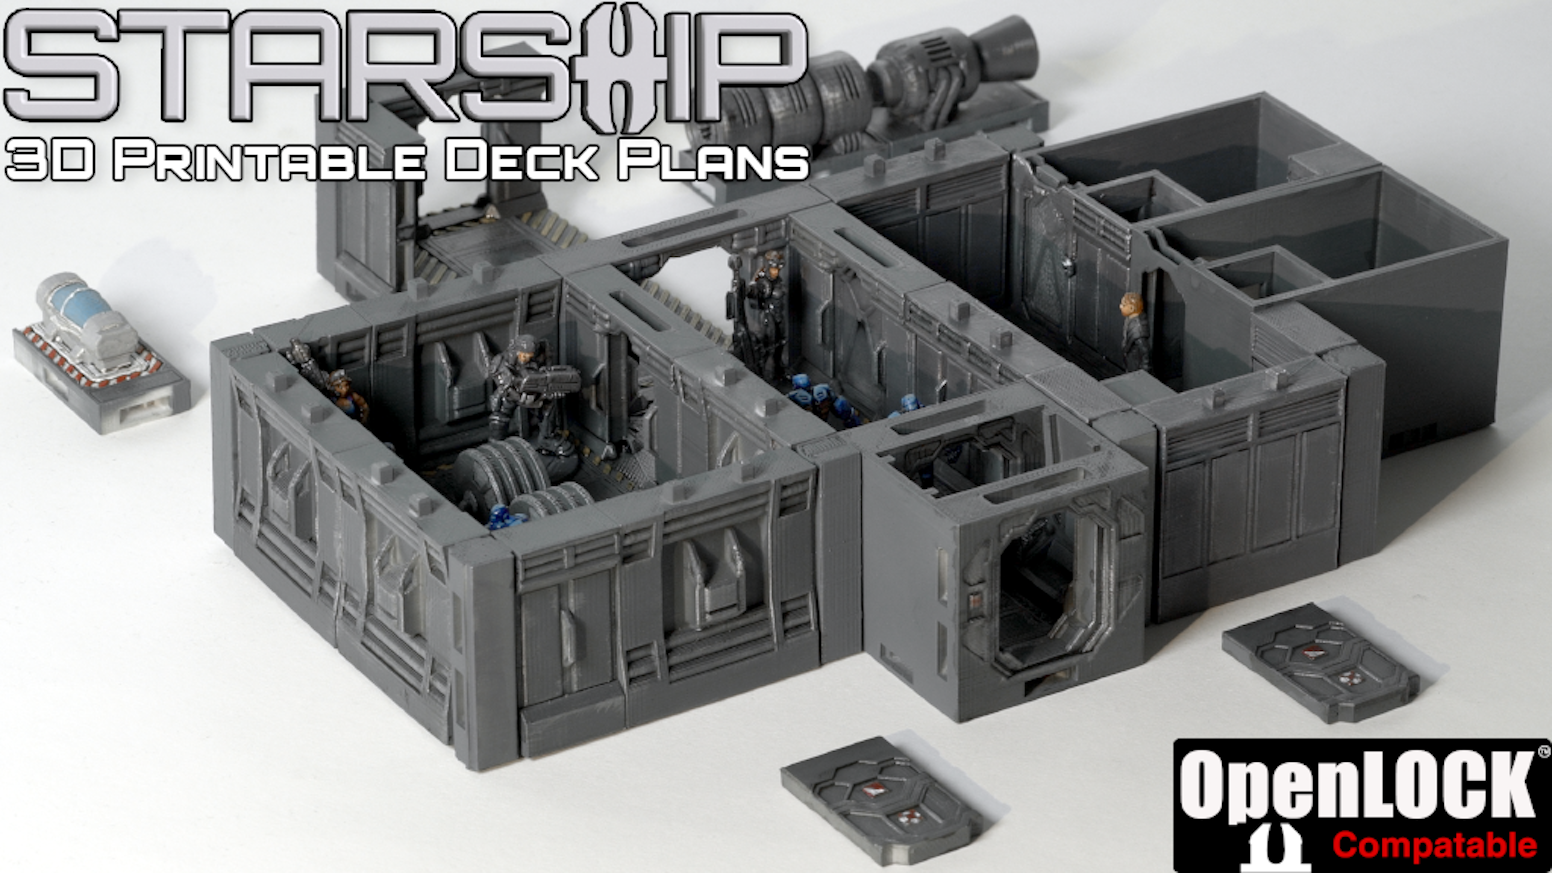 Build your own Starship layout using OpenLOCK-Compatible parts. Ideal for tabletop wargames and RPGs, etc.